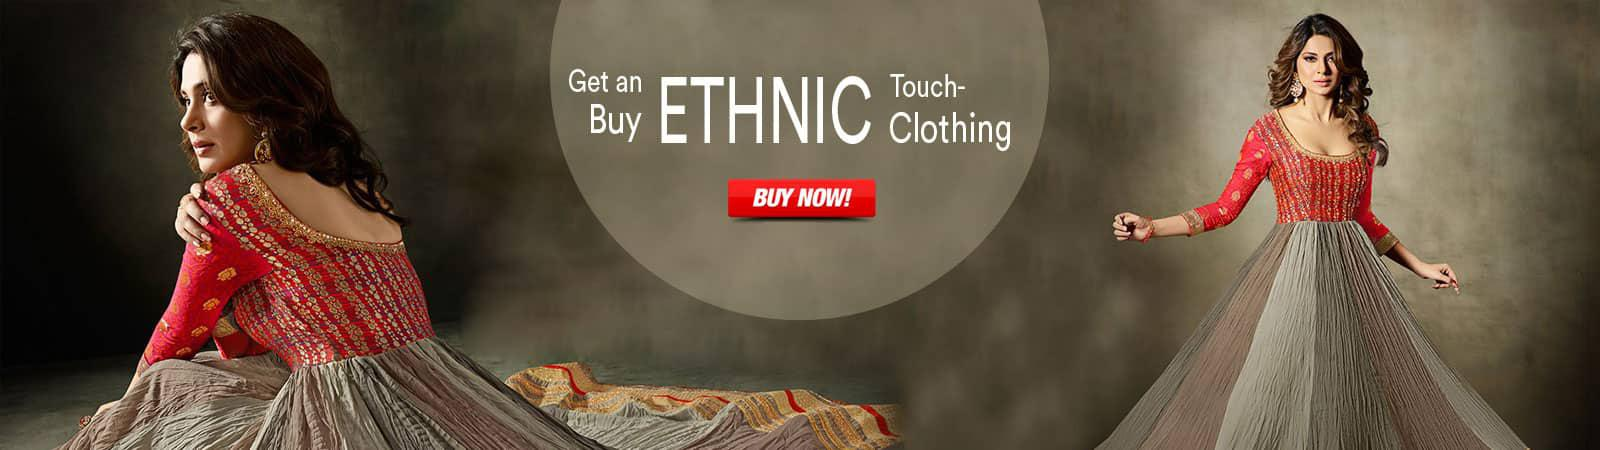 Ethnic Clothing Banner